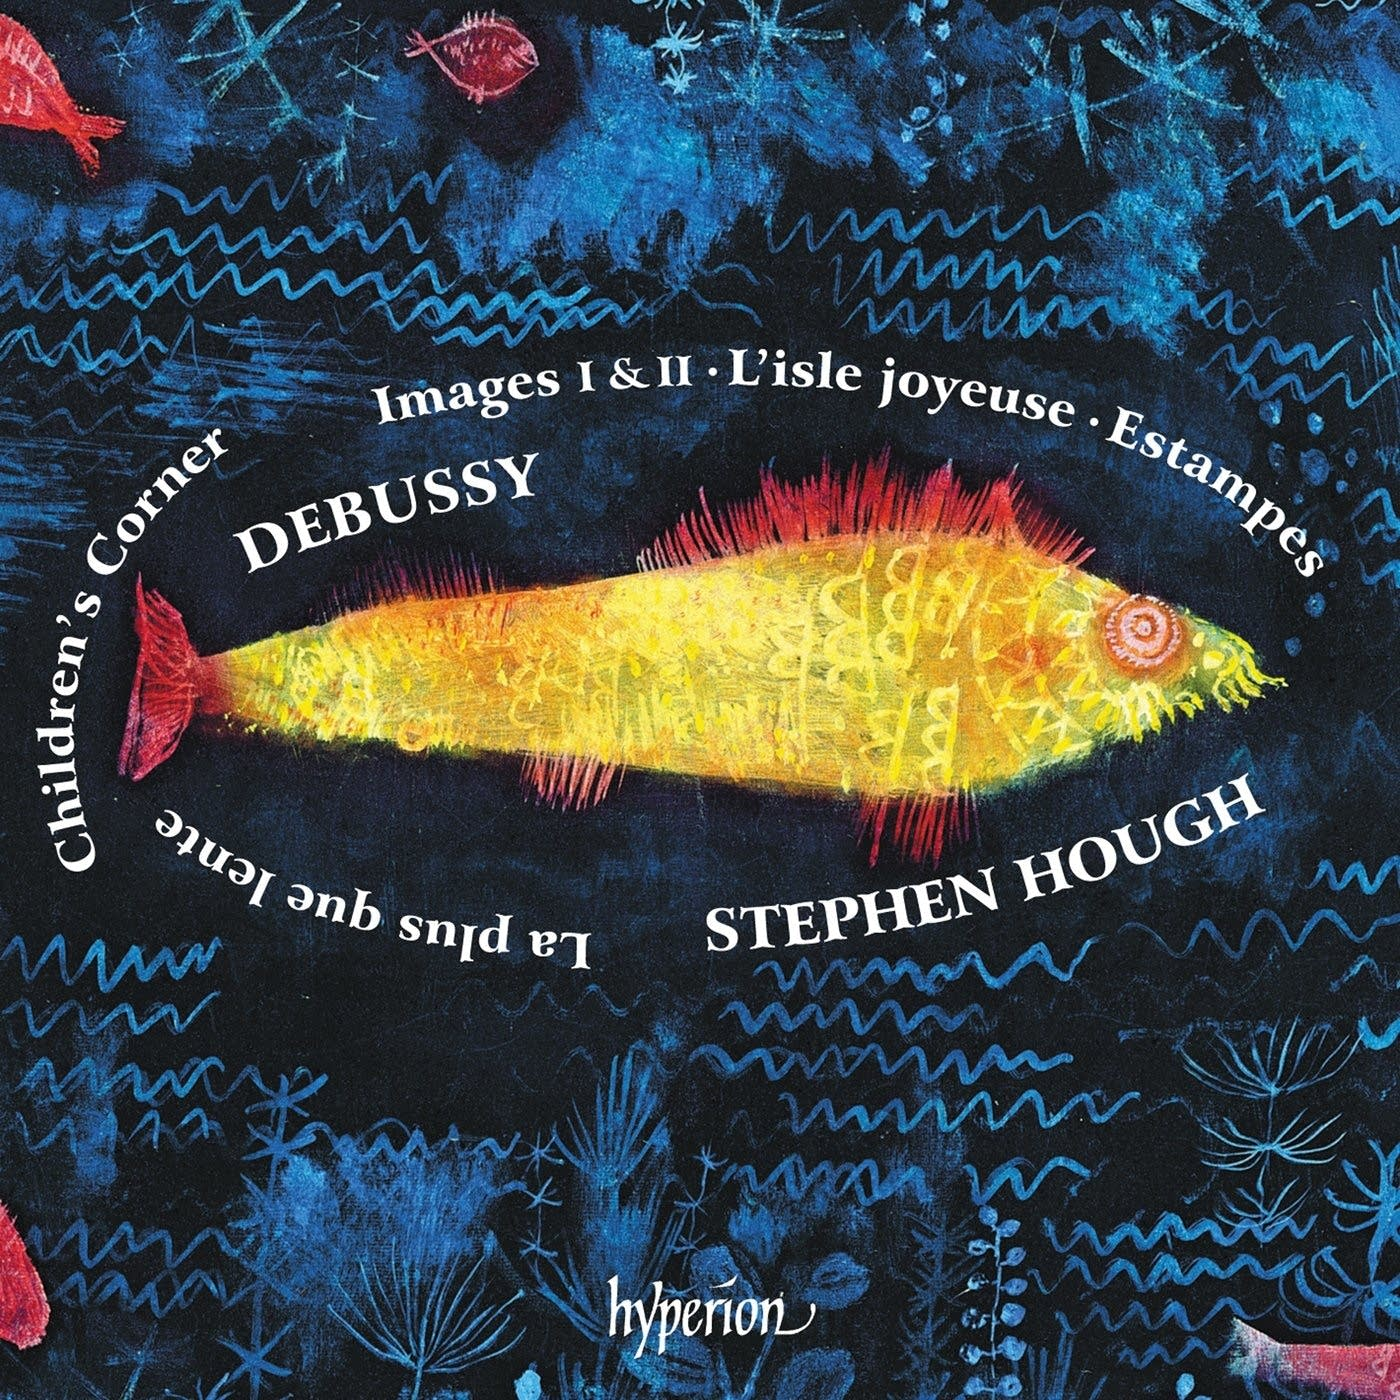 Stephen Hough: Debussy